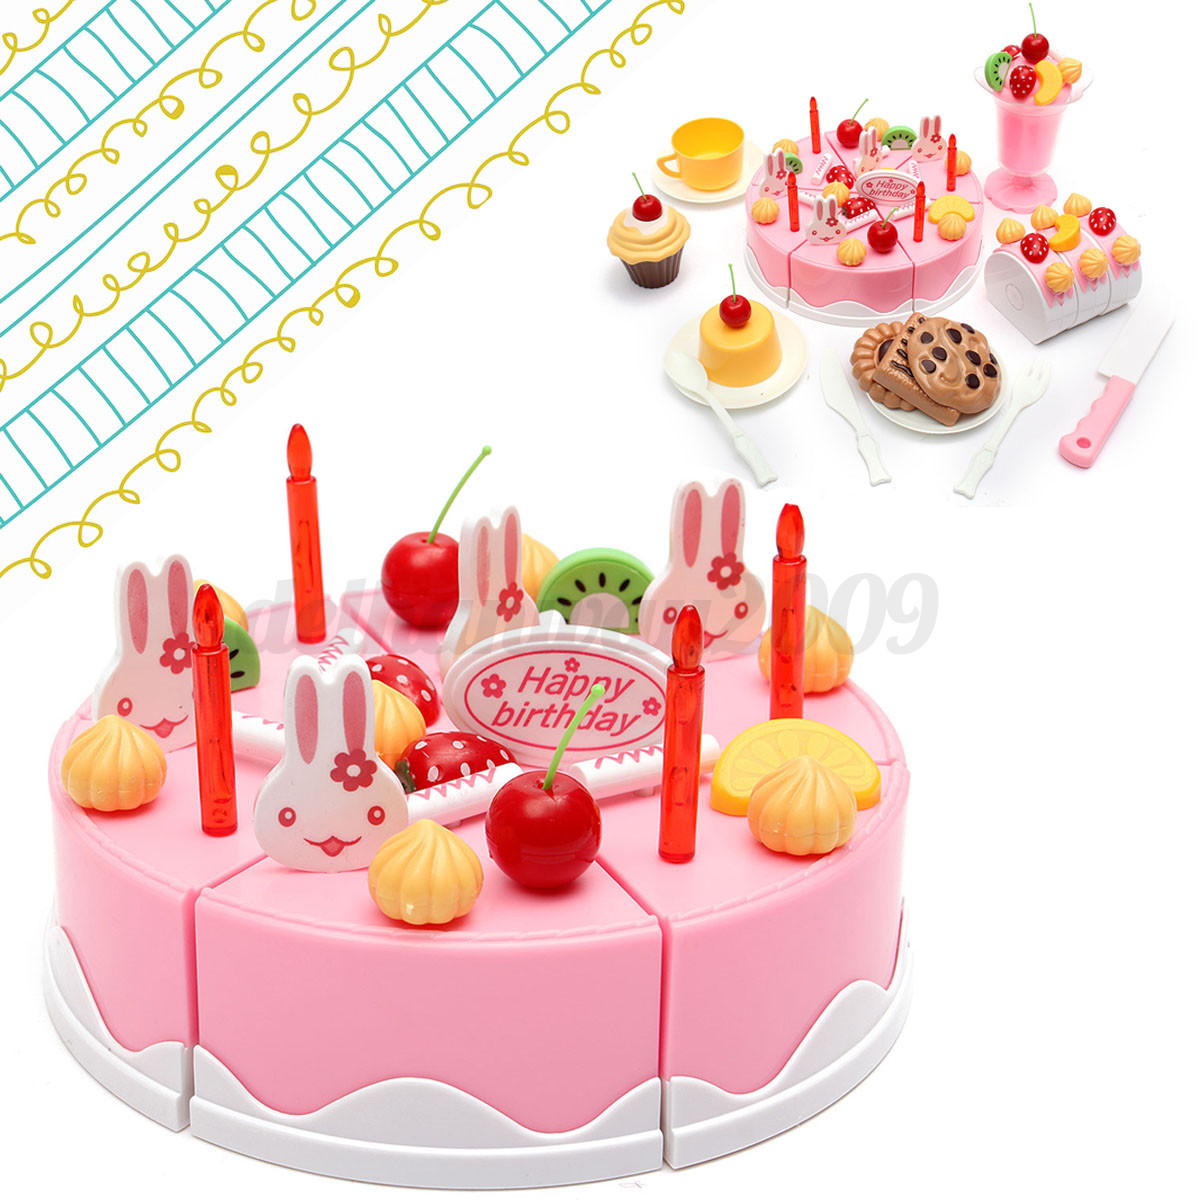 75pcs Birthday Cake Set Pretend Play For Kids Kitchen Play